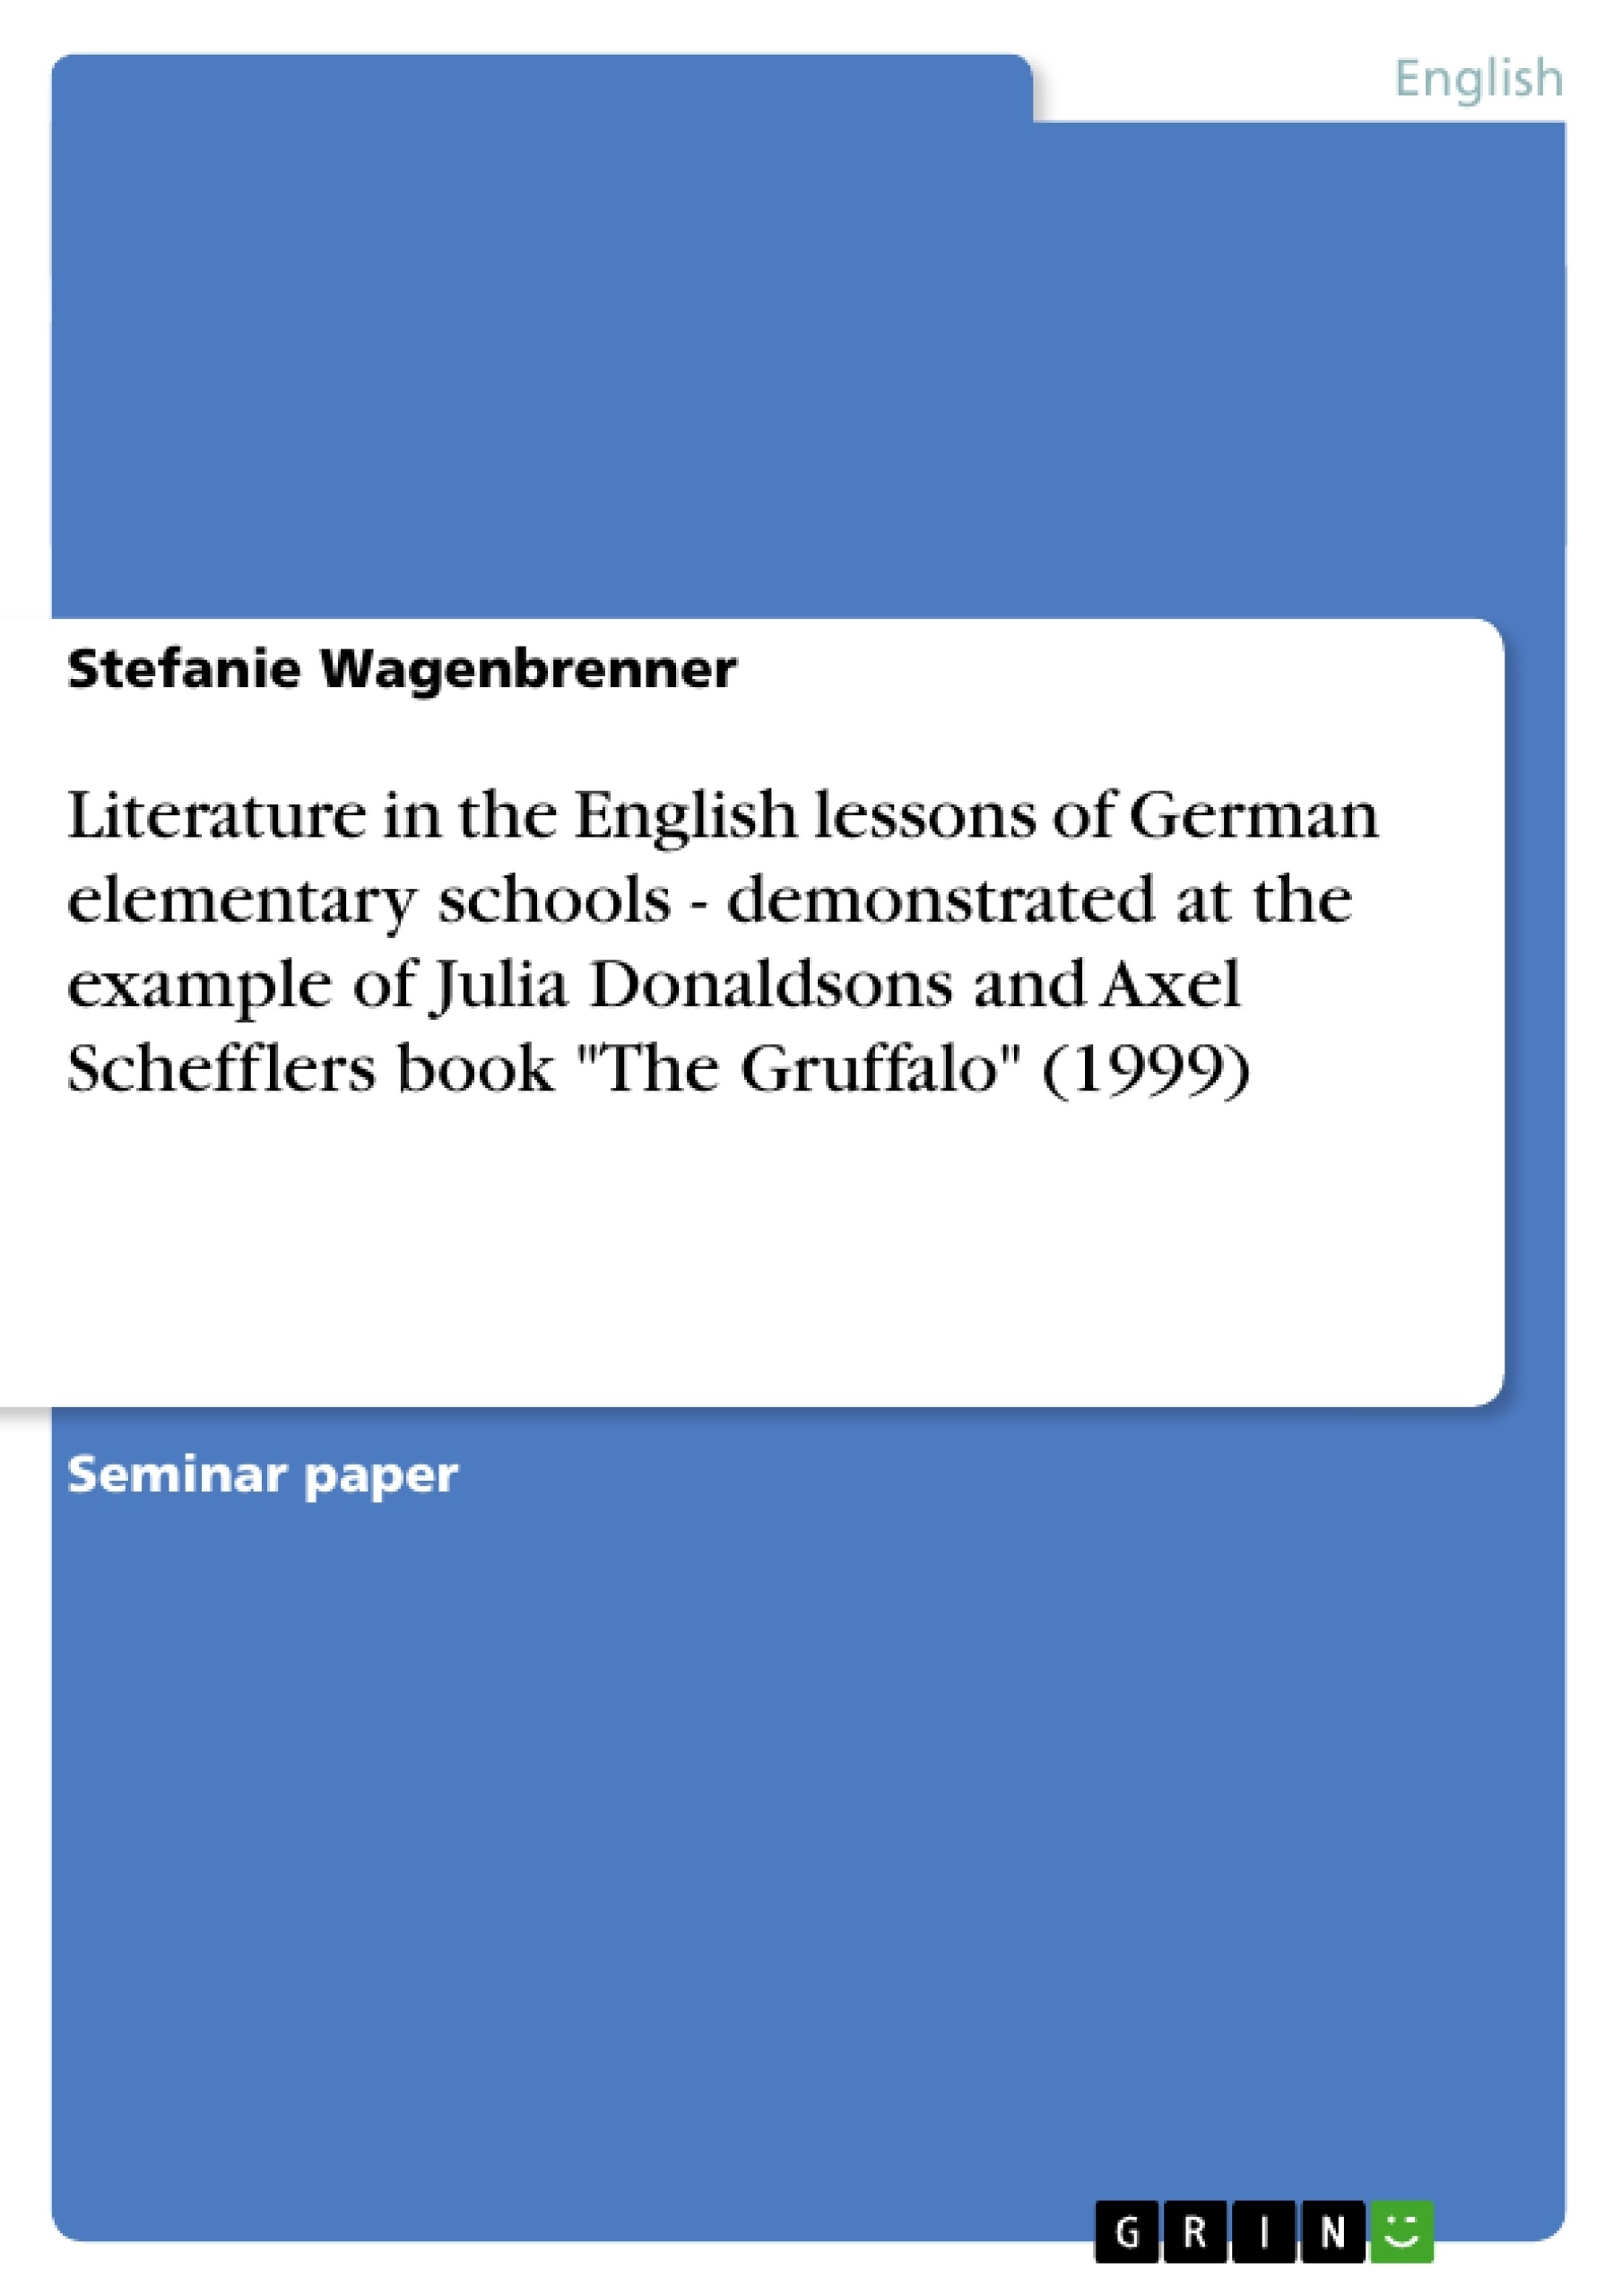 GRIN - Literature in the English lessons of German elementary schools -  demonstrated at the example of Julia Donaldsons and Axel Schefflers book